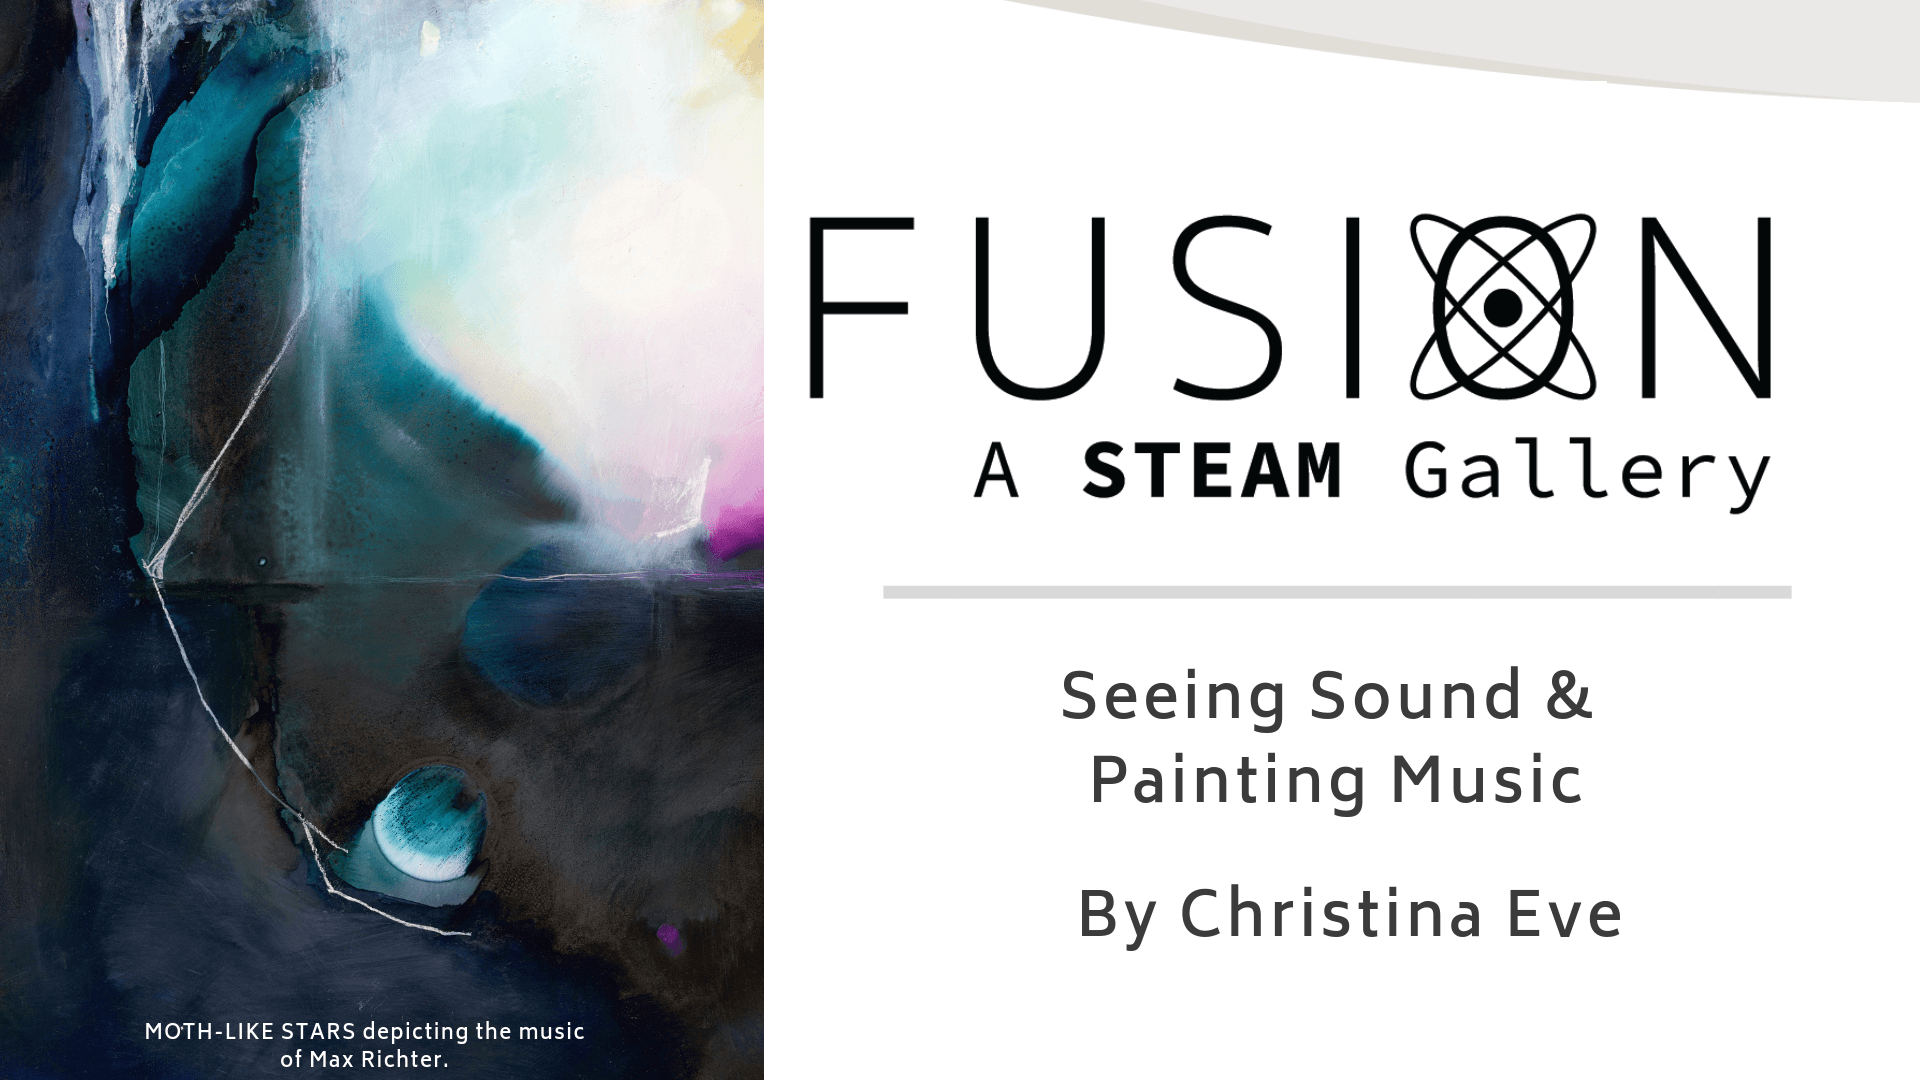 Fusion a steam gallery, seeing sound and painting music. By Christina Eve